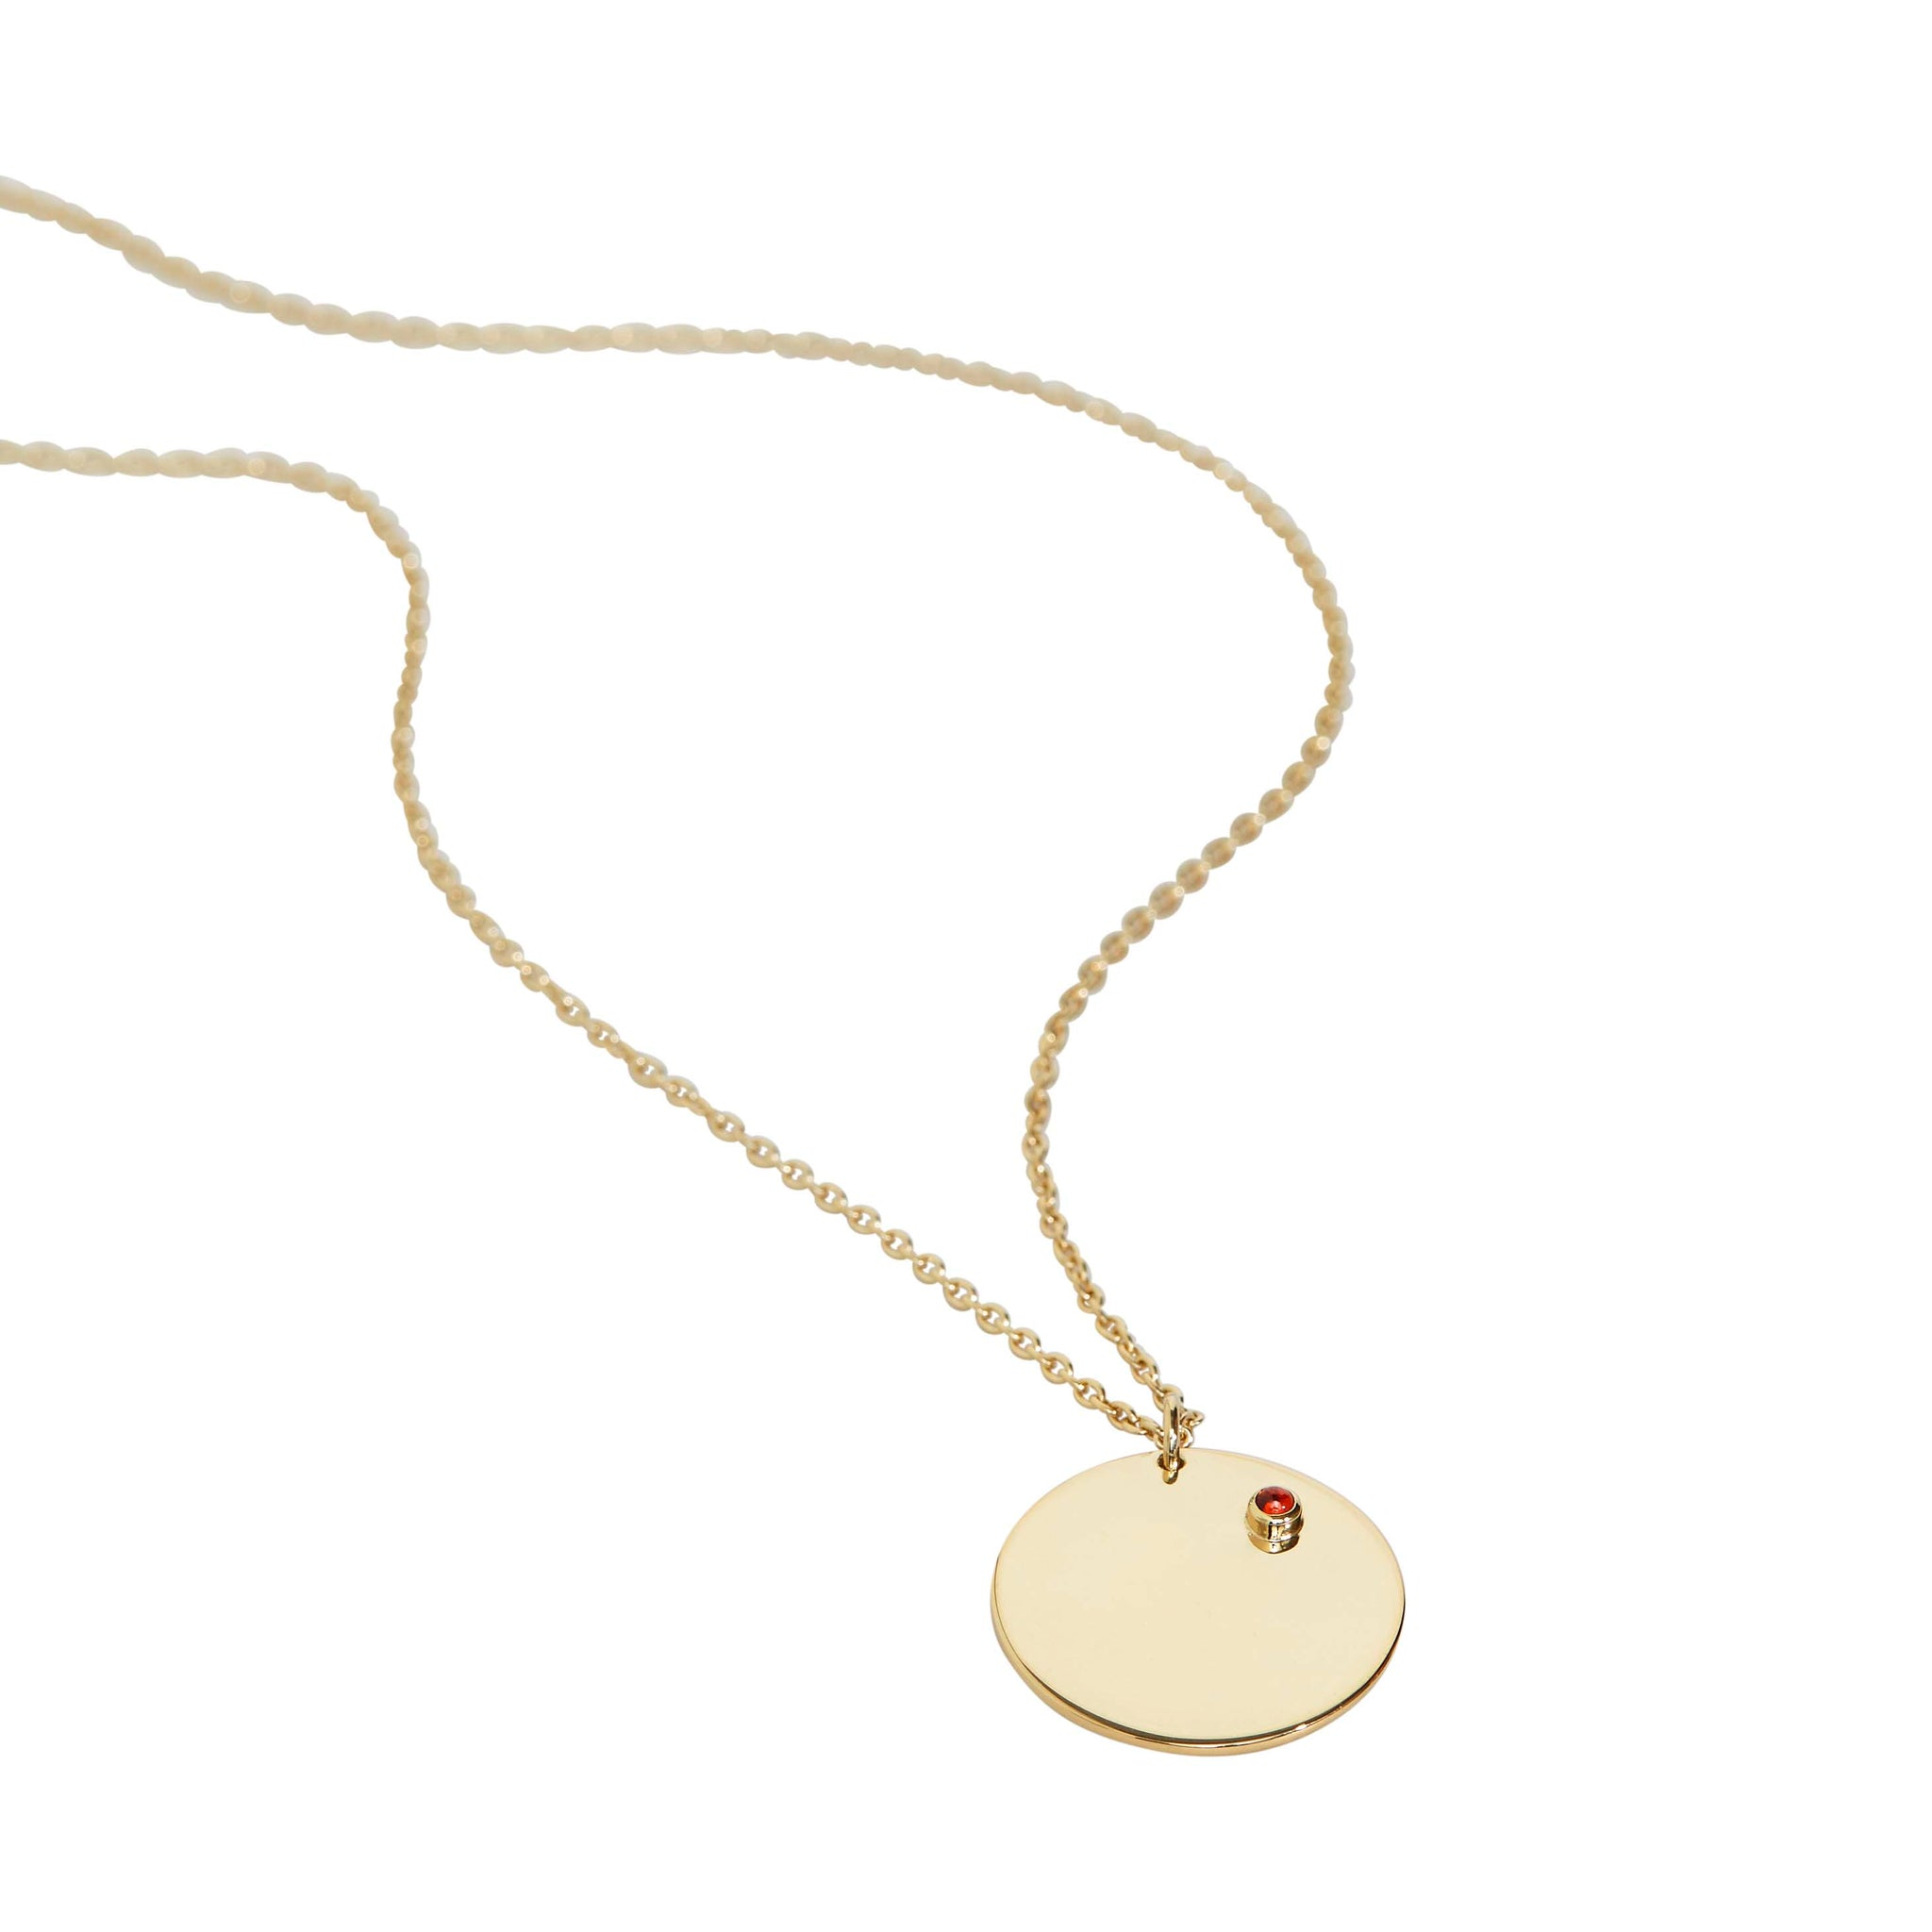 TRINE TUXEN - JANUARY GARNET NECKLACE